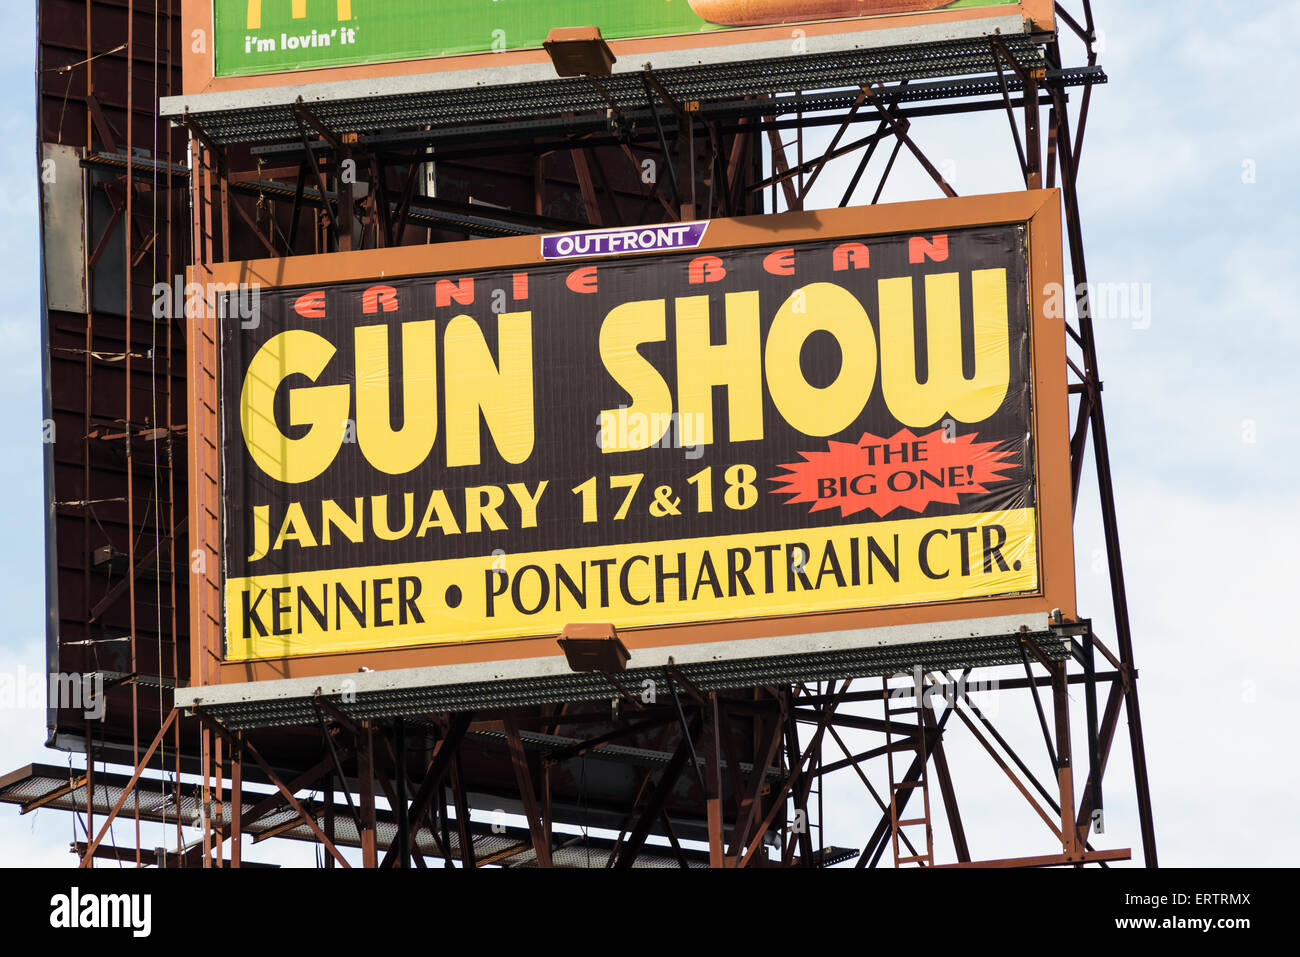 Sign for a gun show in New Orleans, Louisiana, USA - Stock Image